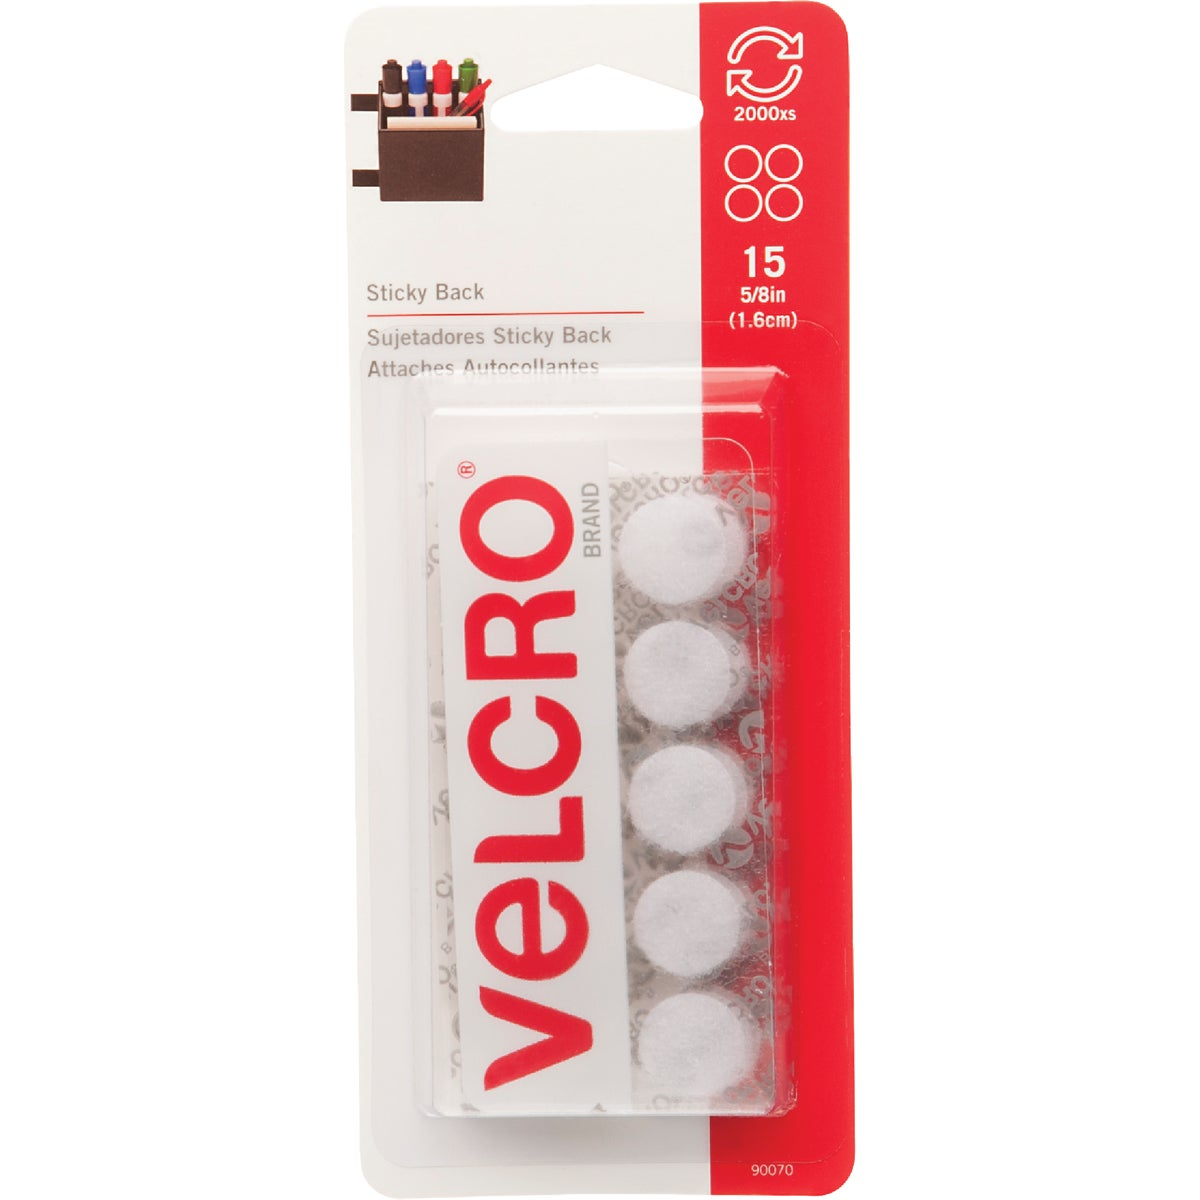 WHT RND ADHSIVE FASTENER - 90070 by Velcro Usa